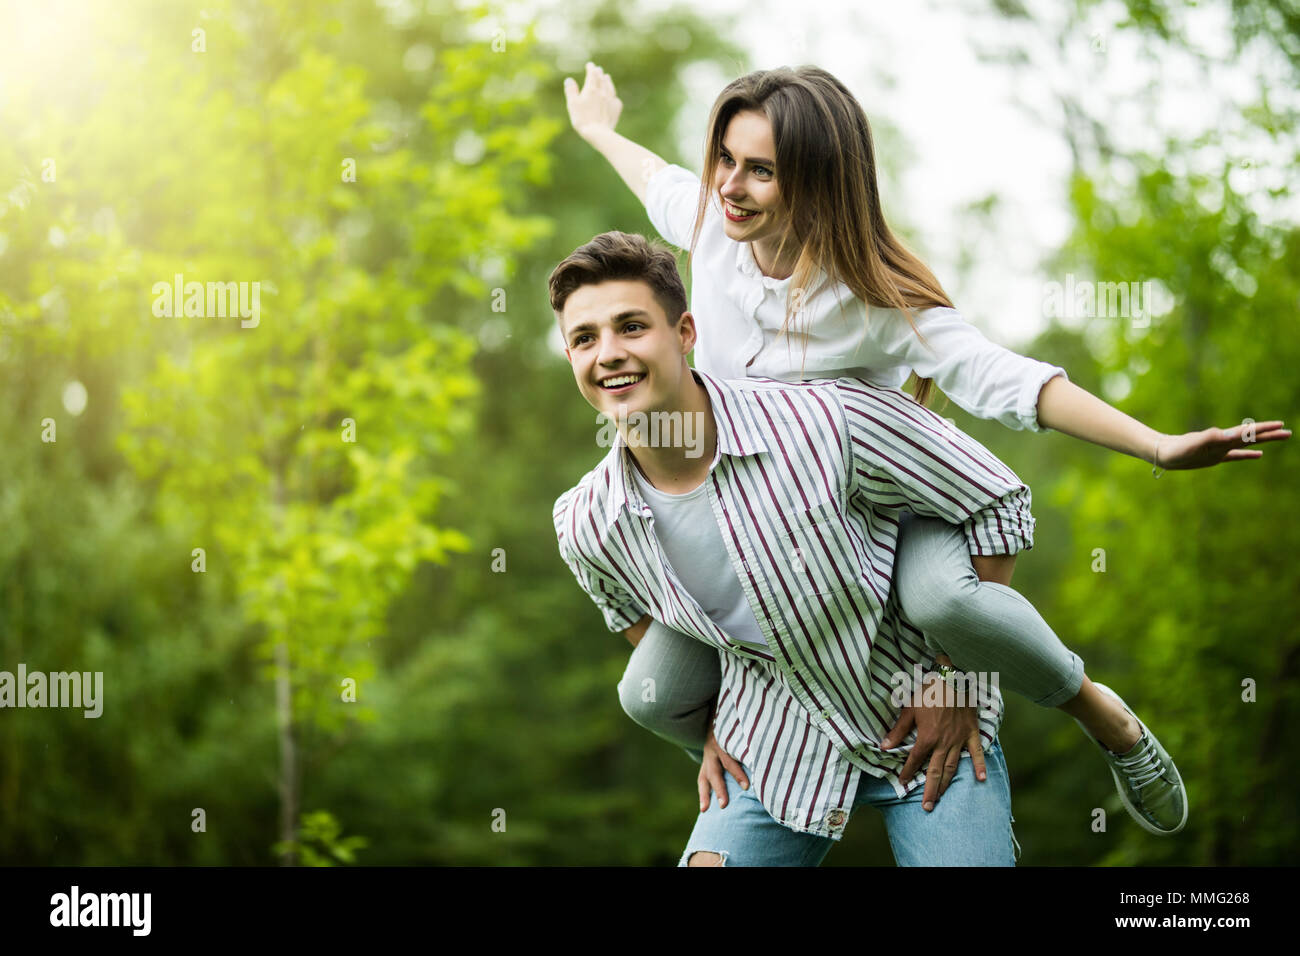 Hipster couple having fun together on a summers day Stock Photo